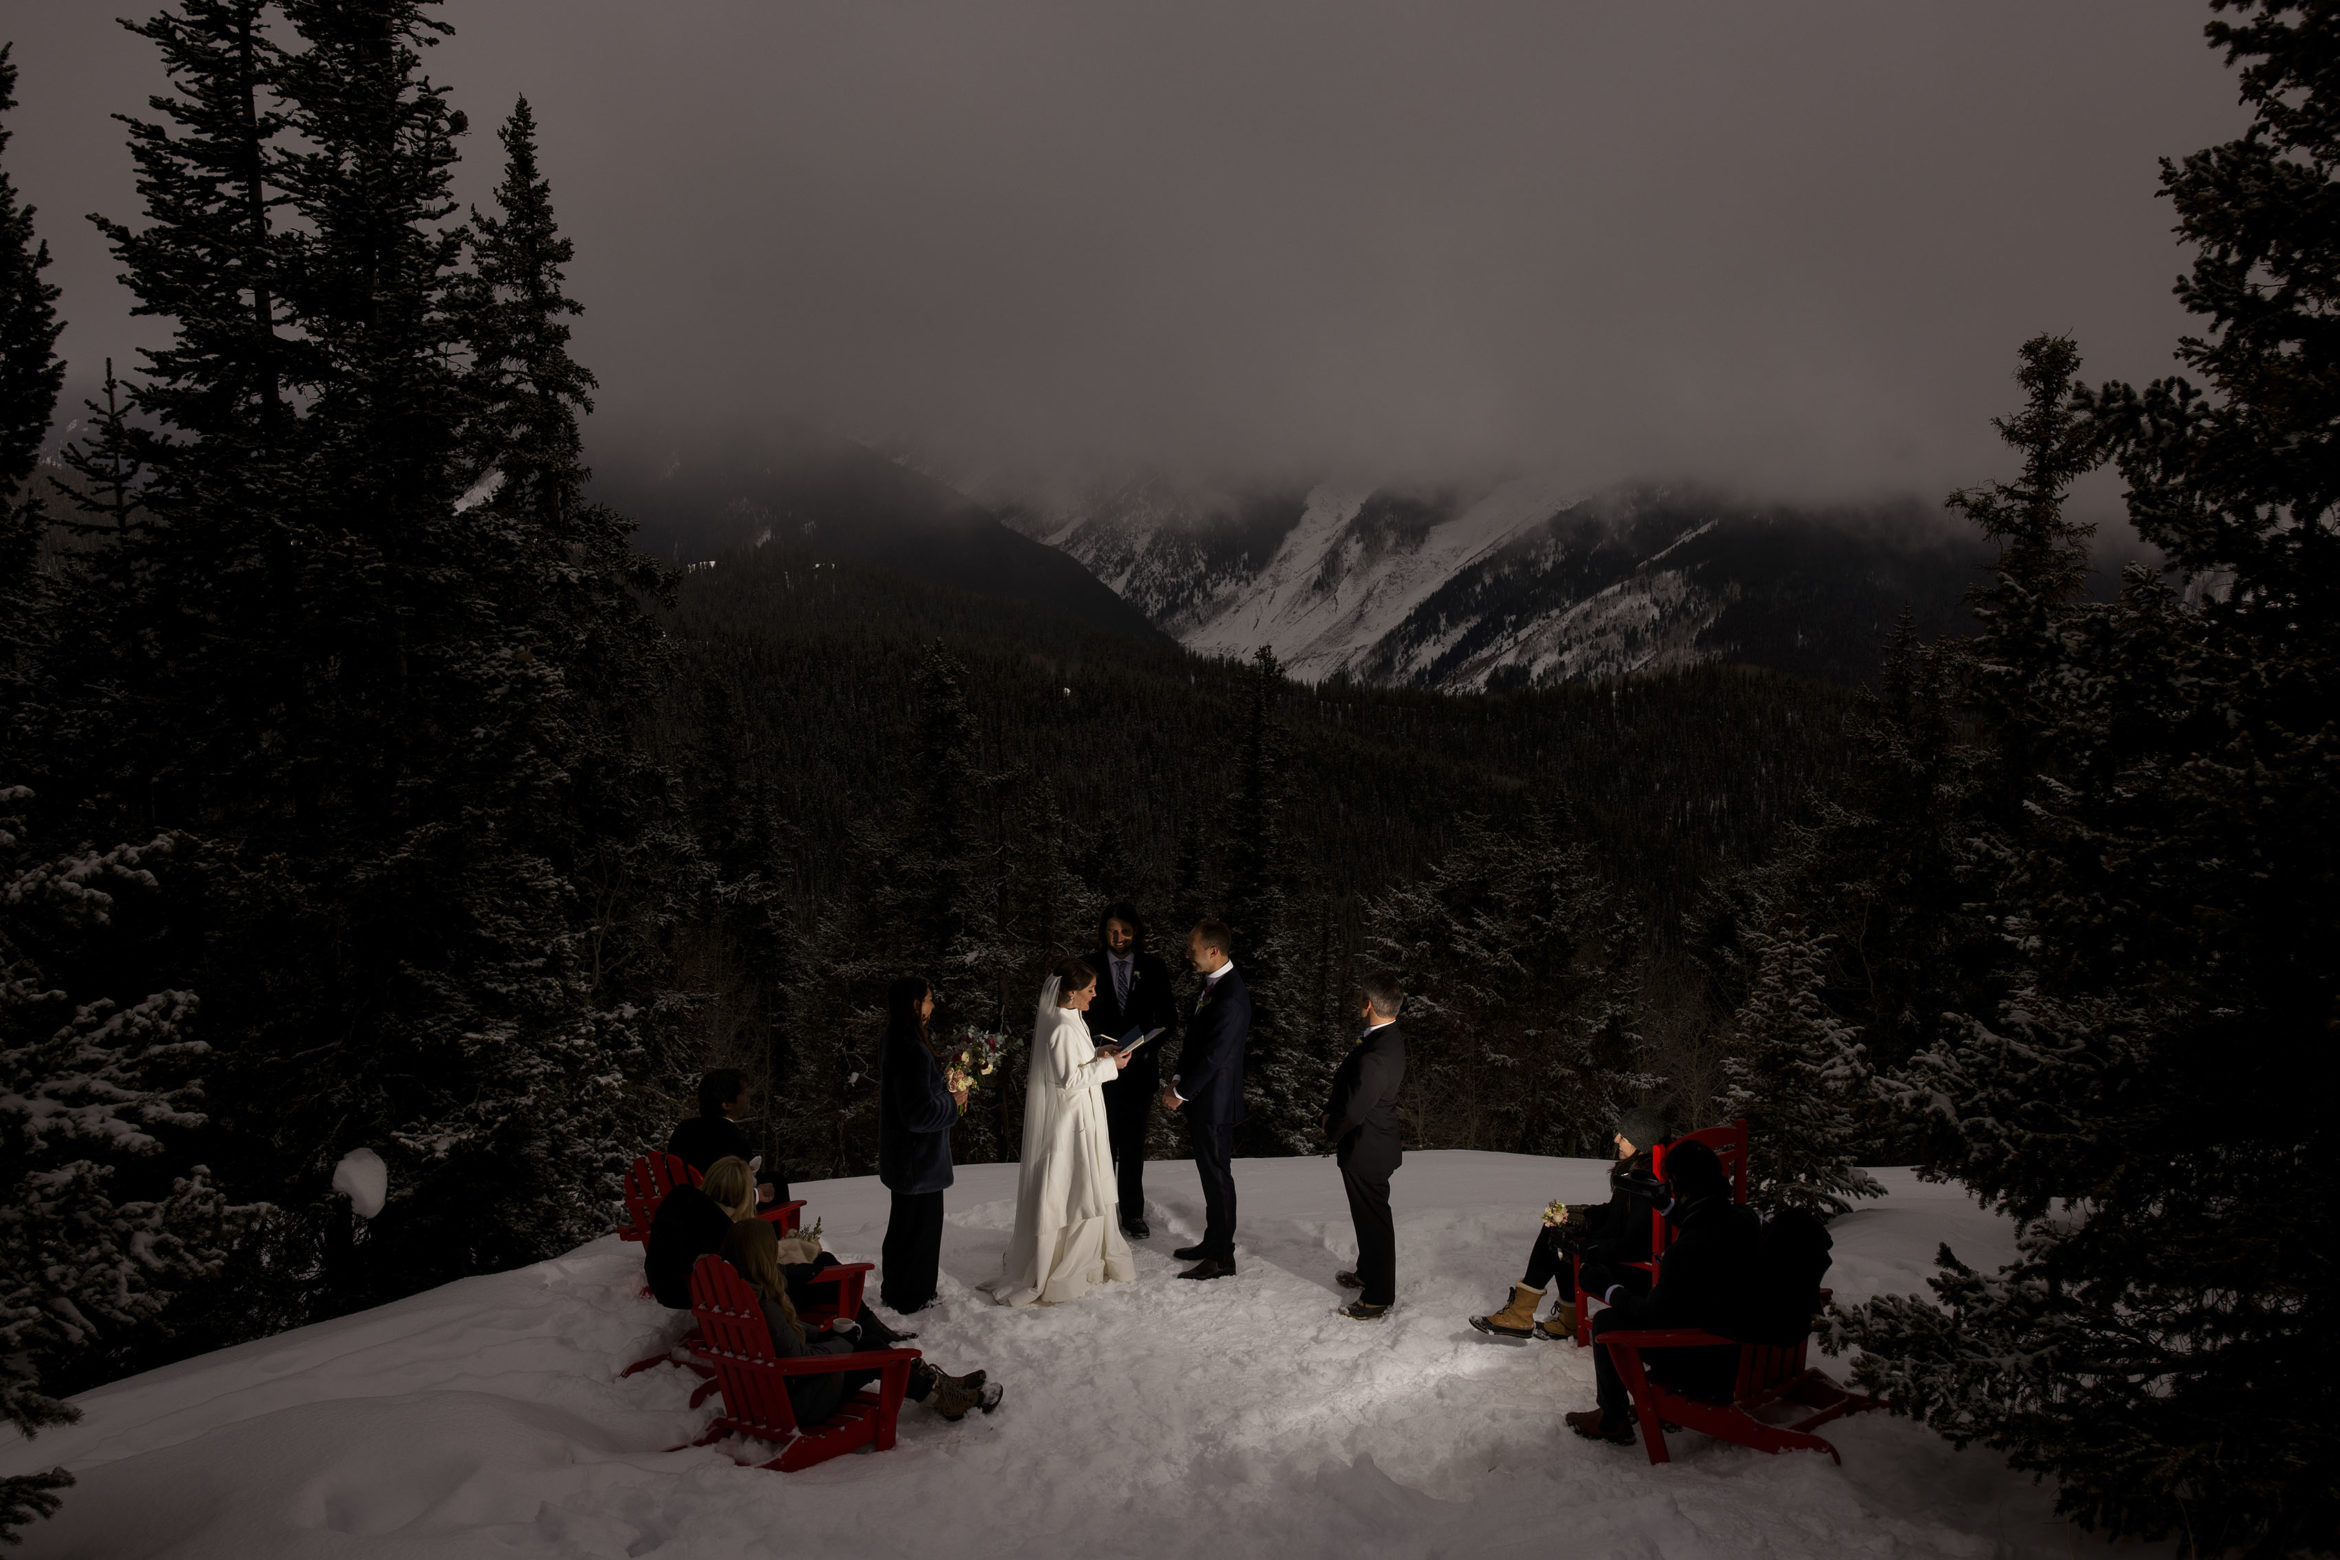 Olivia reads her vows on the Aspen wedding deck as the fog rolls in during their micro wedding